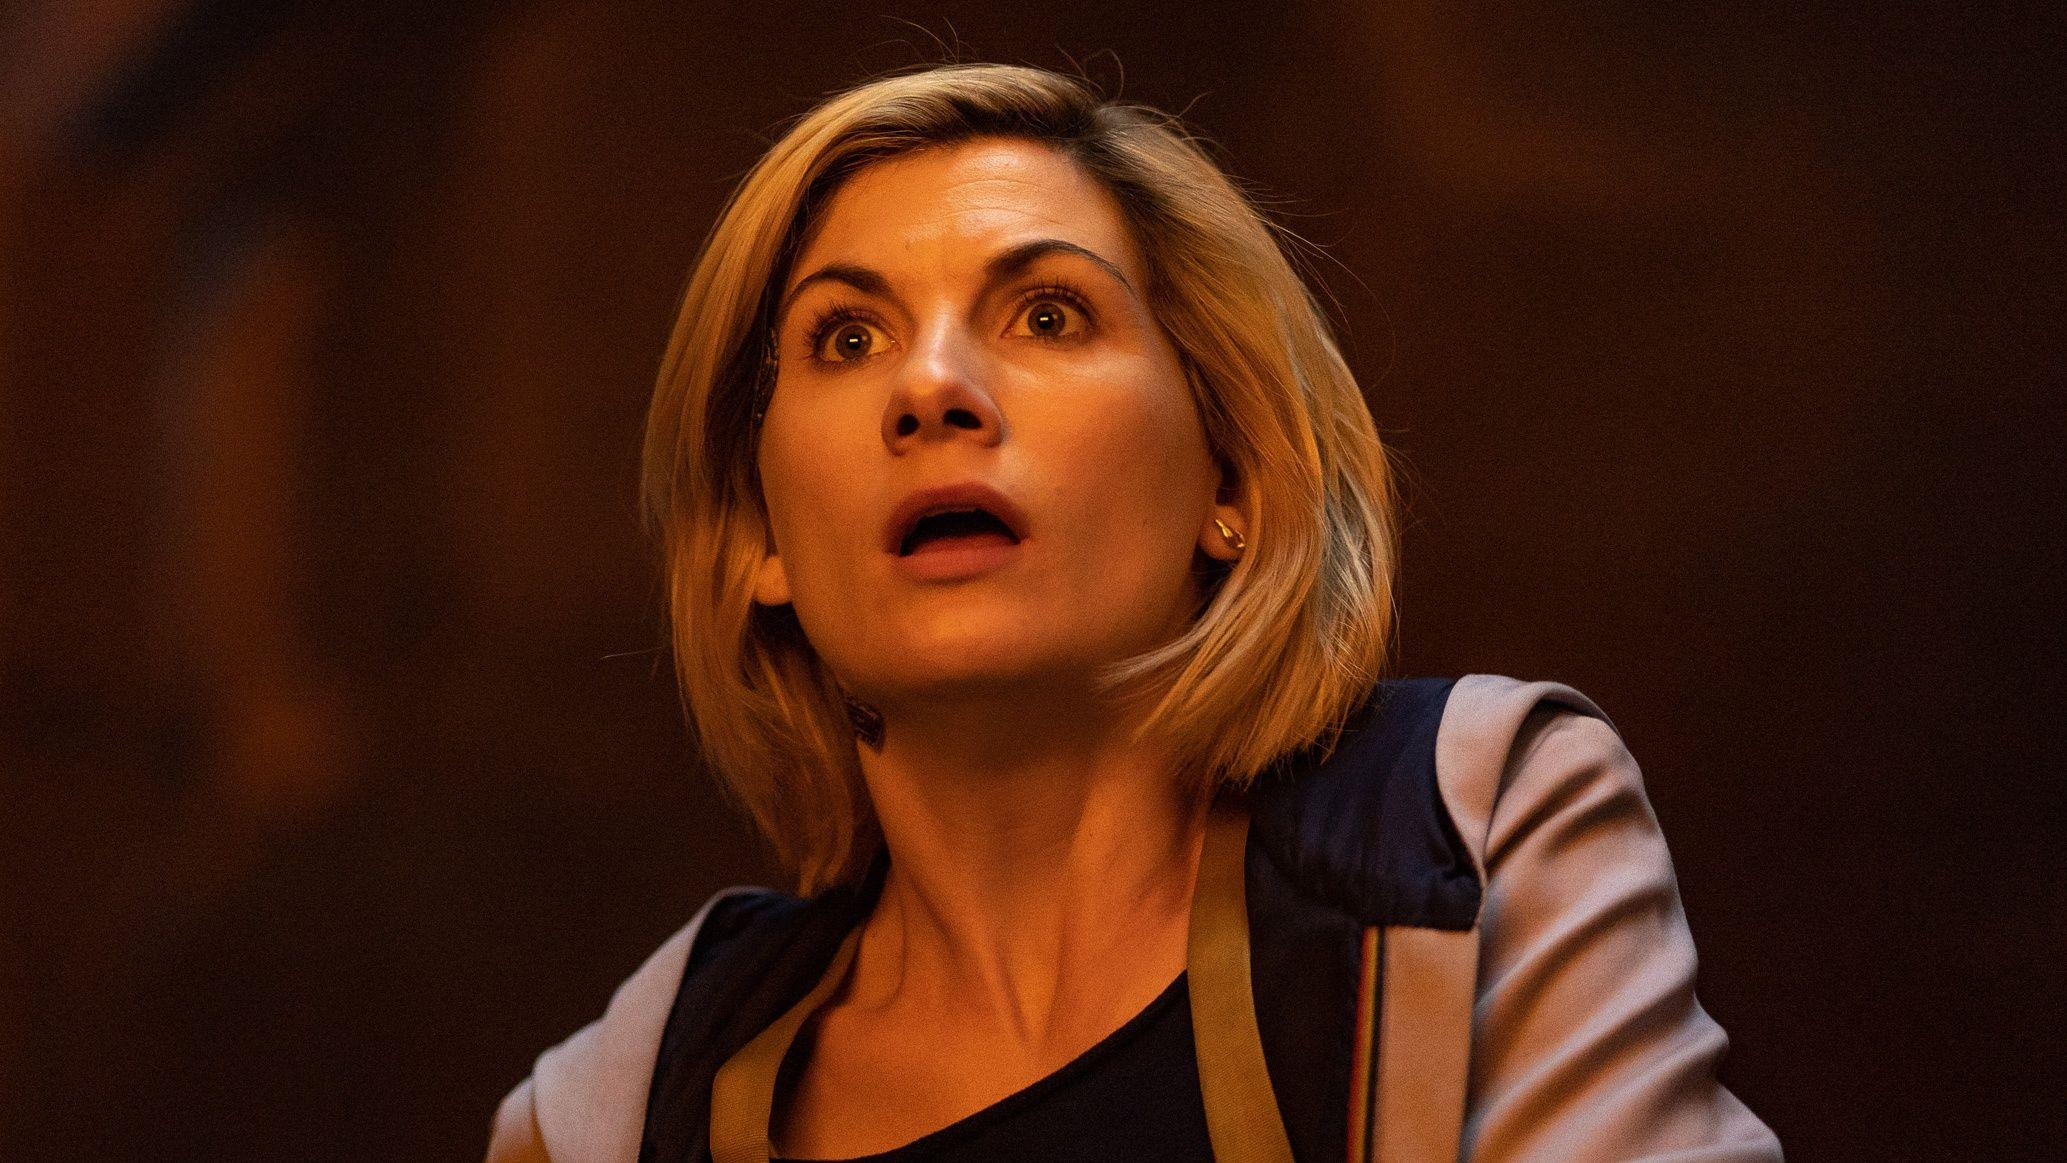 'Doctor Who' series 12 will return on New Year's Day